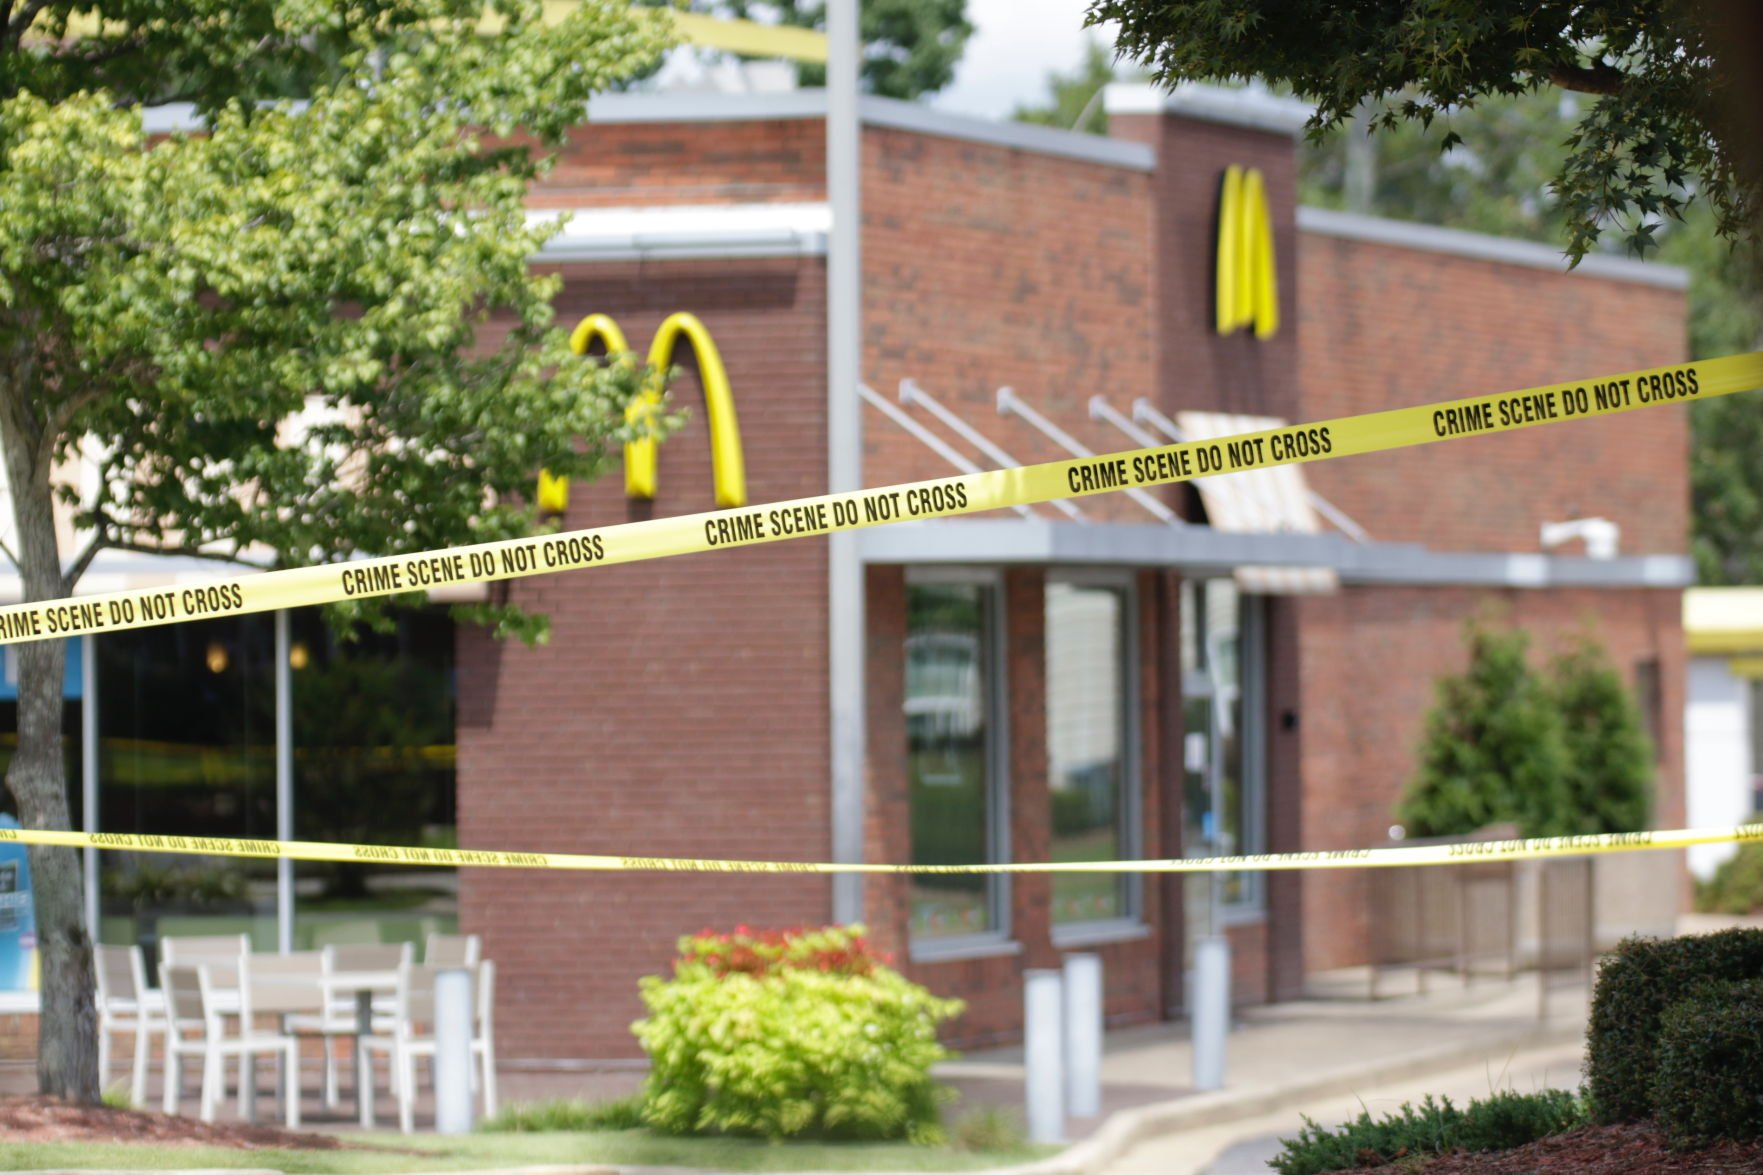 auburn shooting juvenile charged with murder 1 dead 4 injured rh oanow com